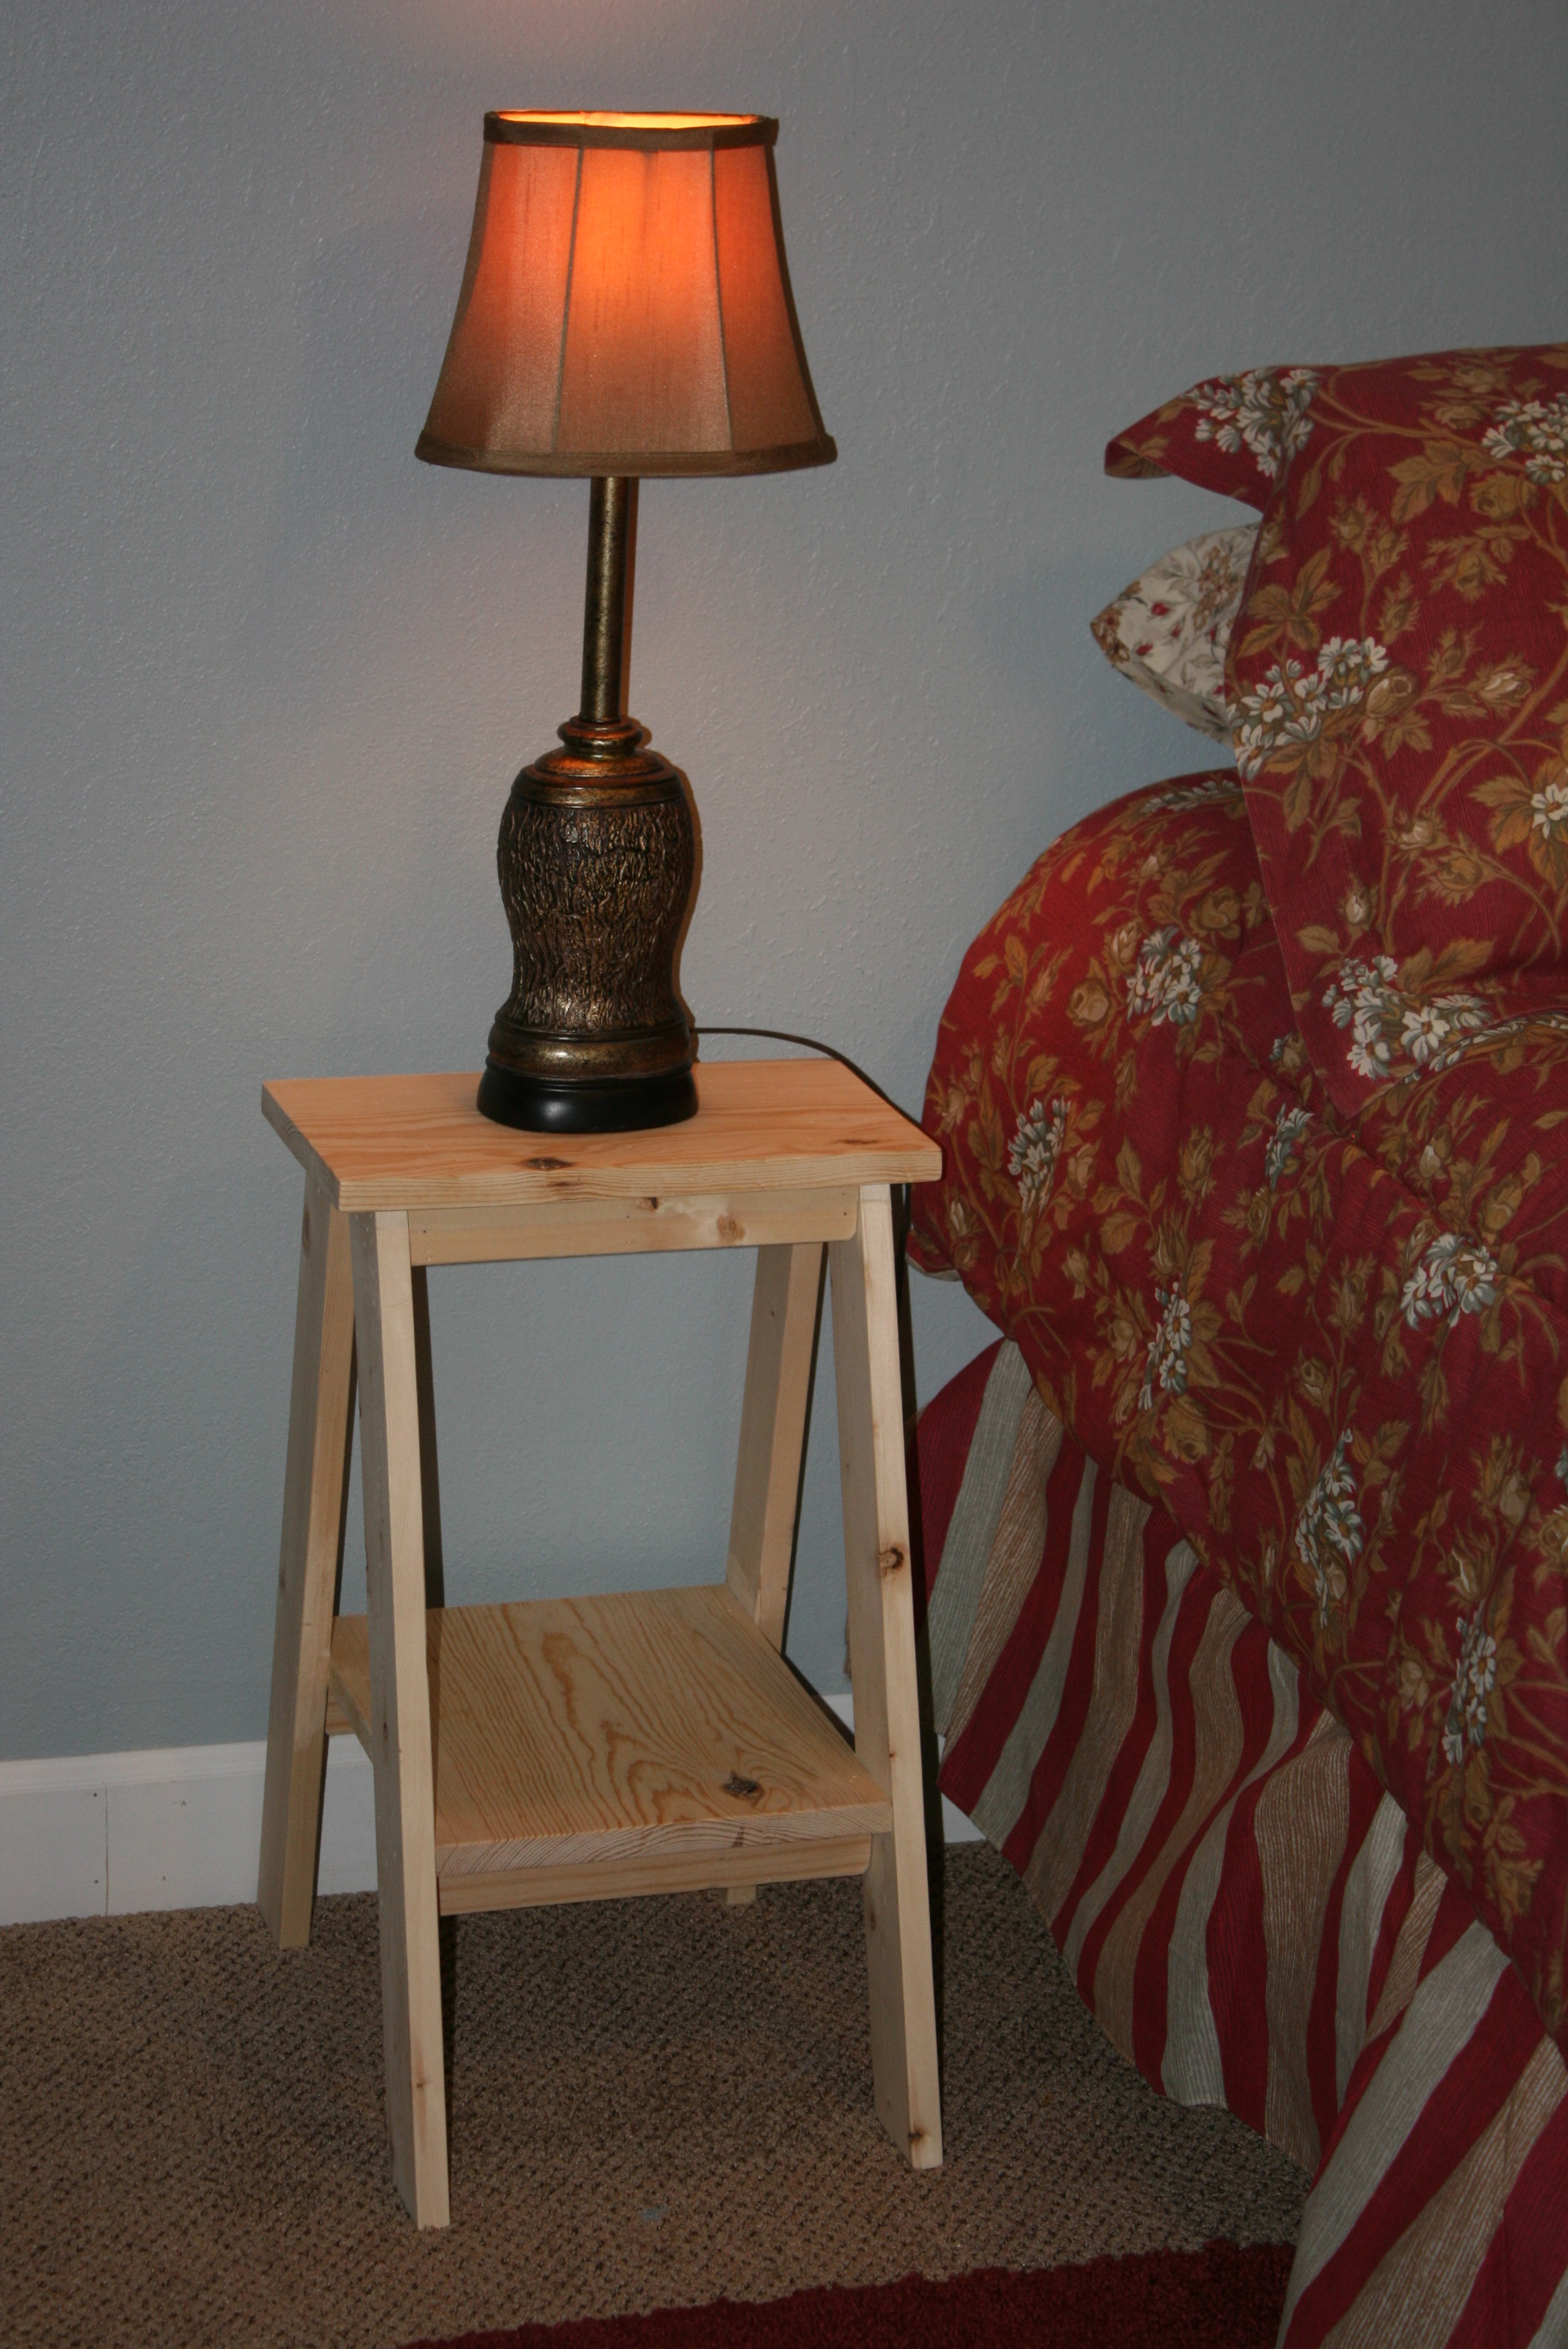 Ana White Stools Turned Nightstand Diy Projects